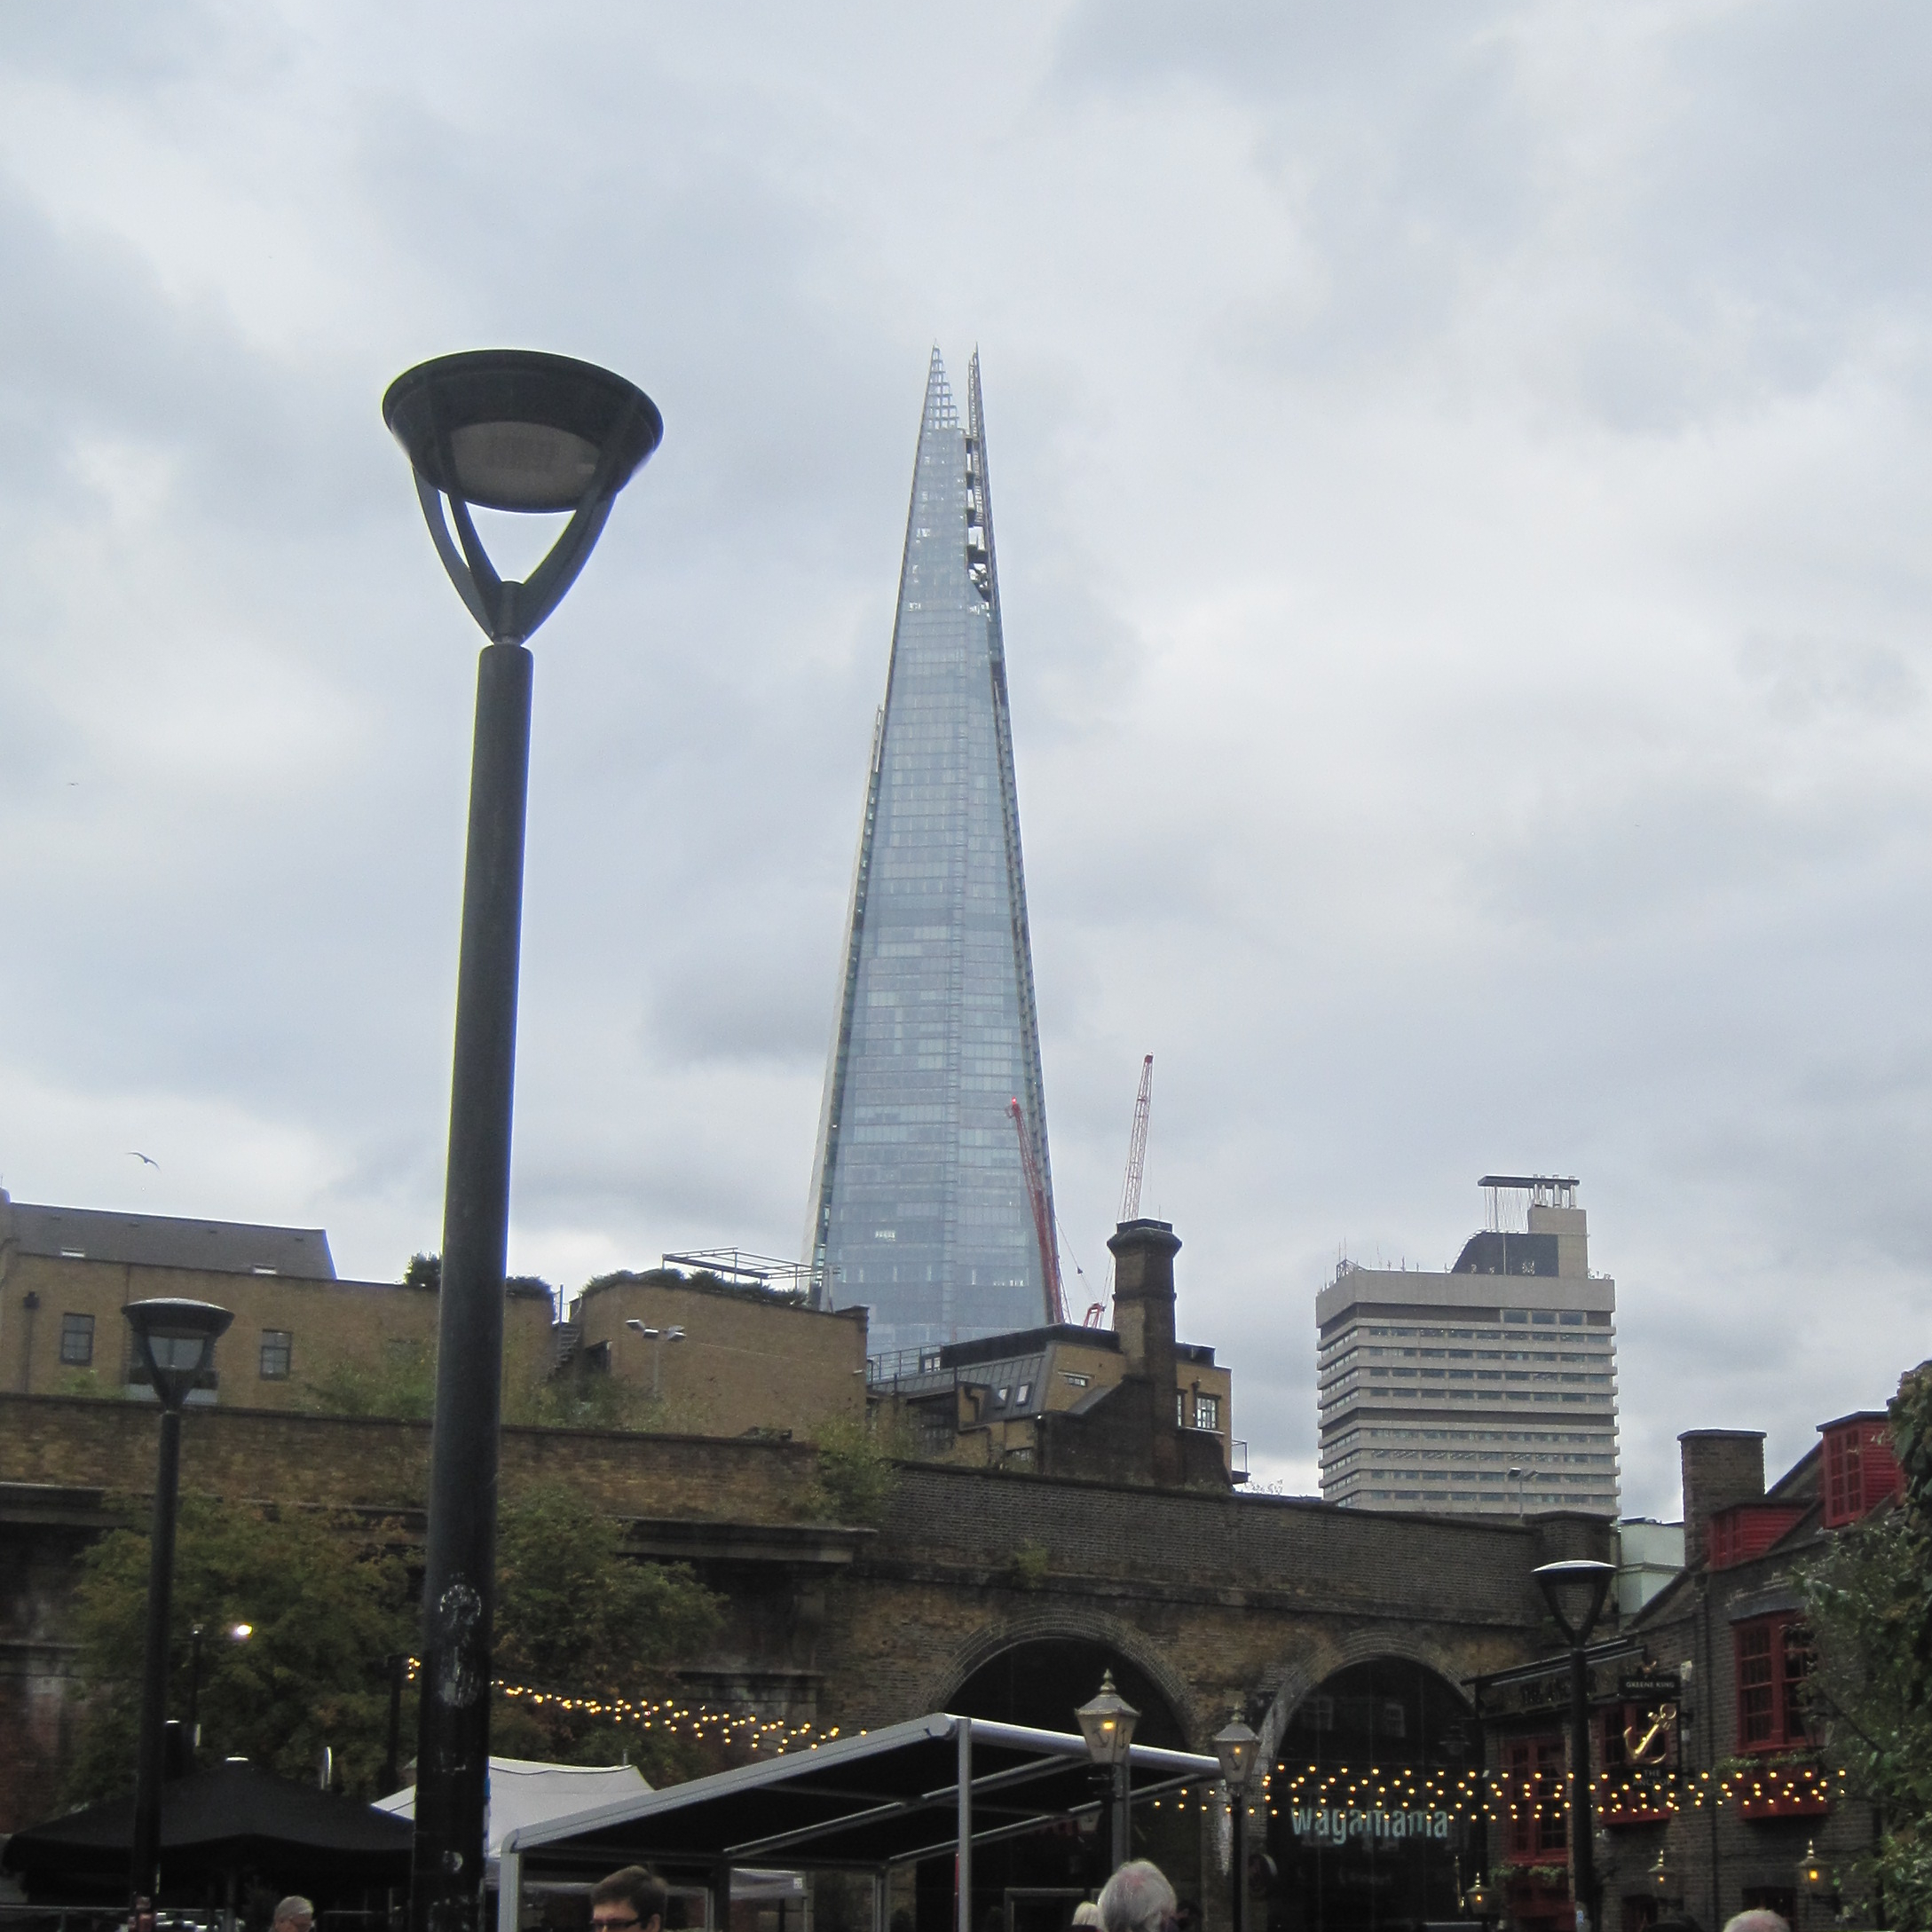 The Shard - photo by Juliamaud